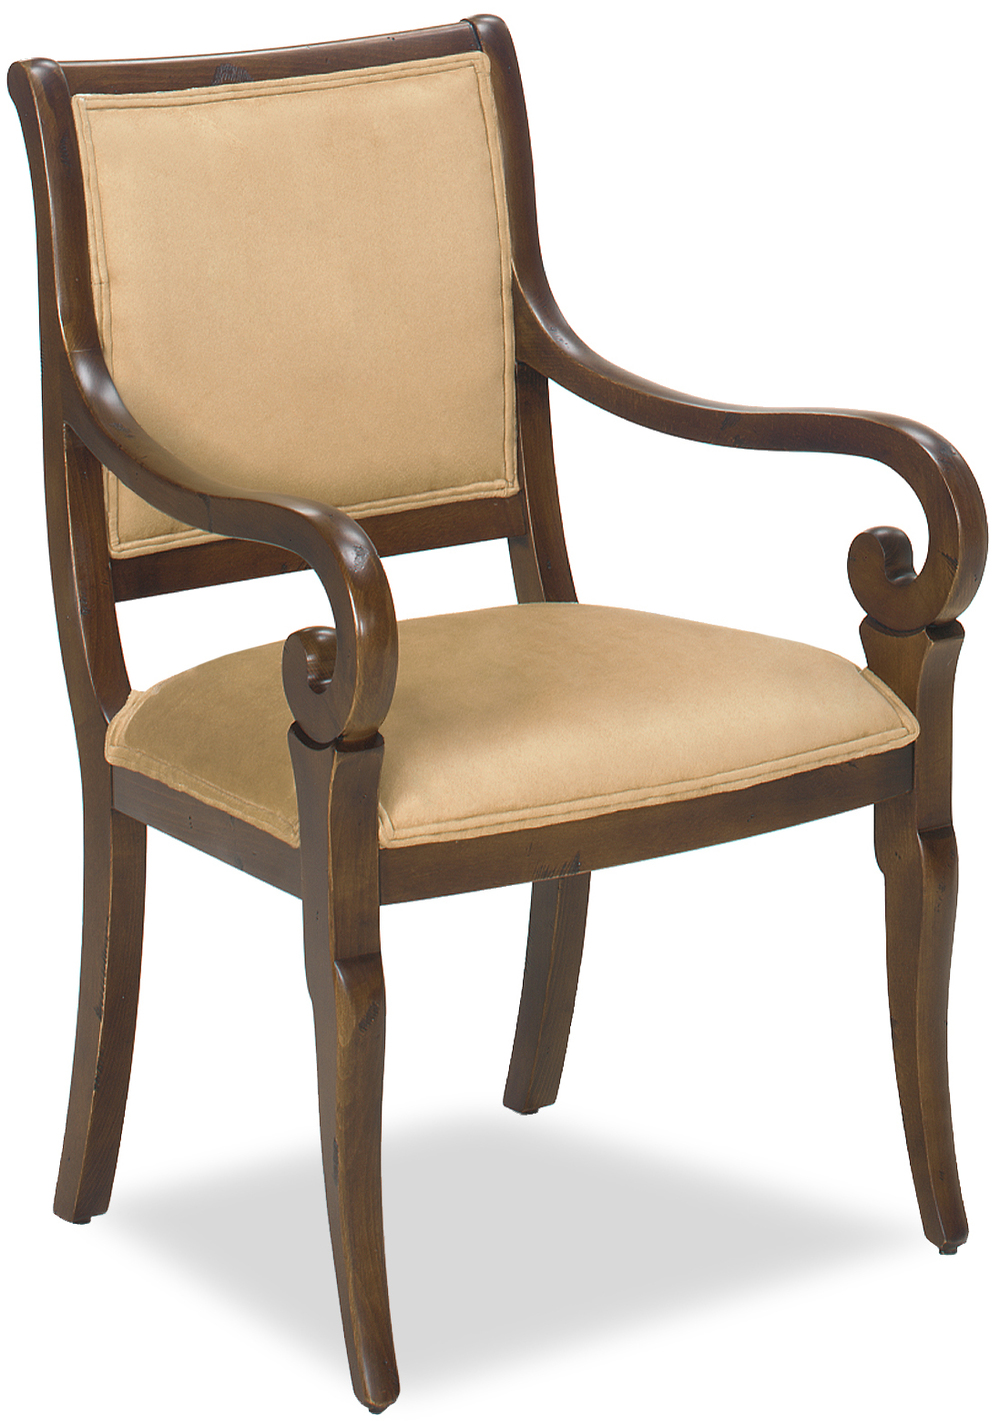 Parker Southern - Rhodes Chair